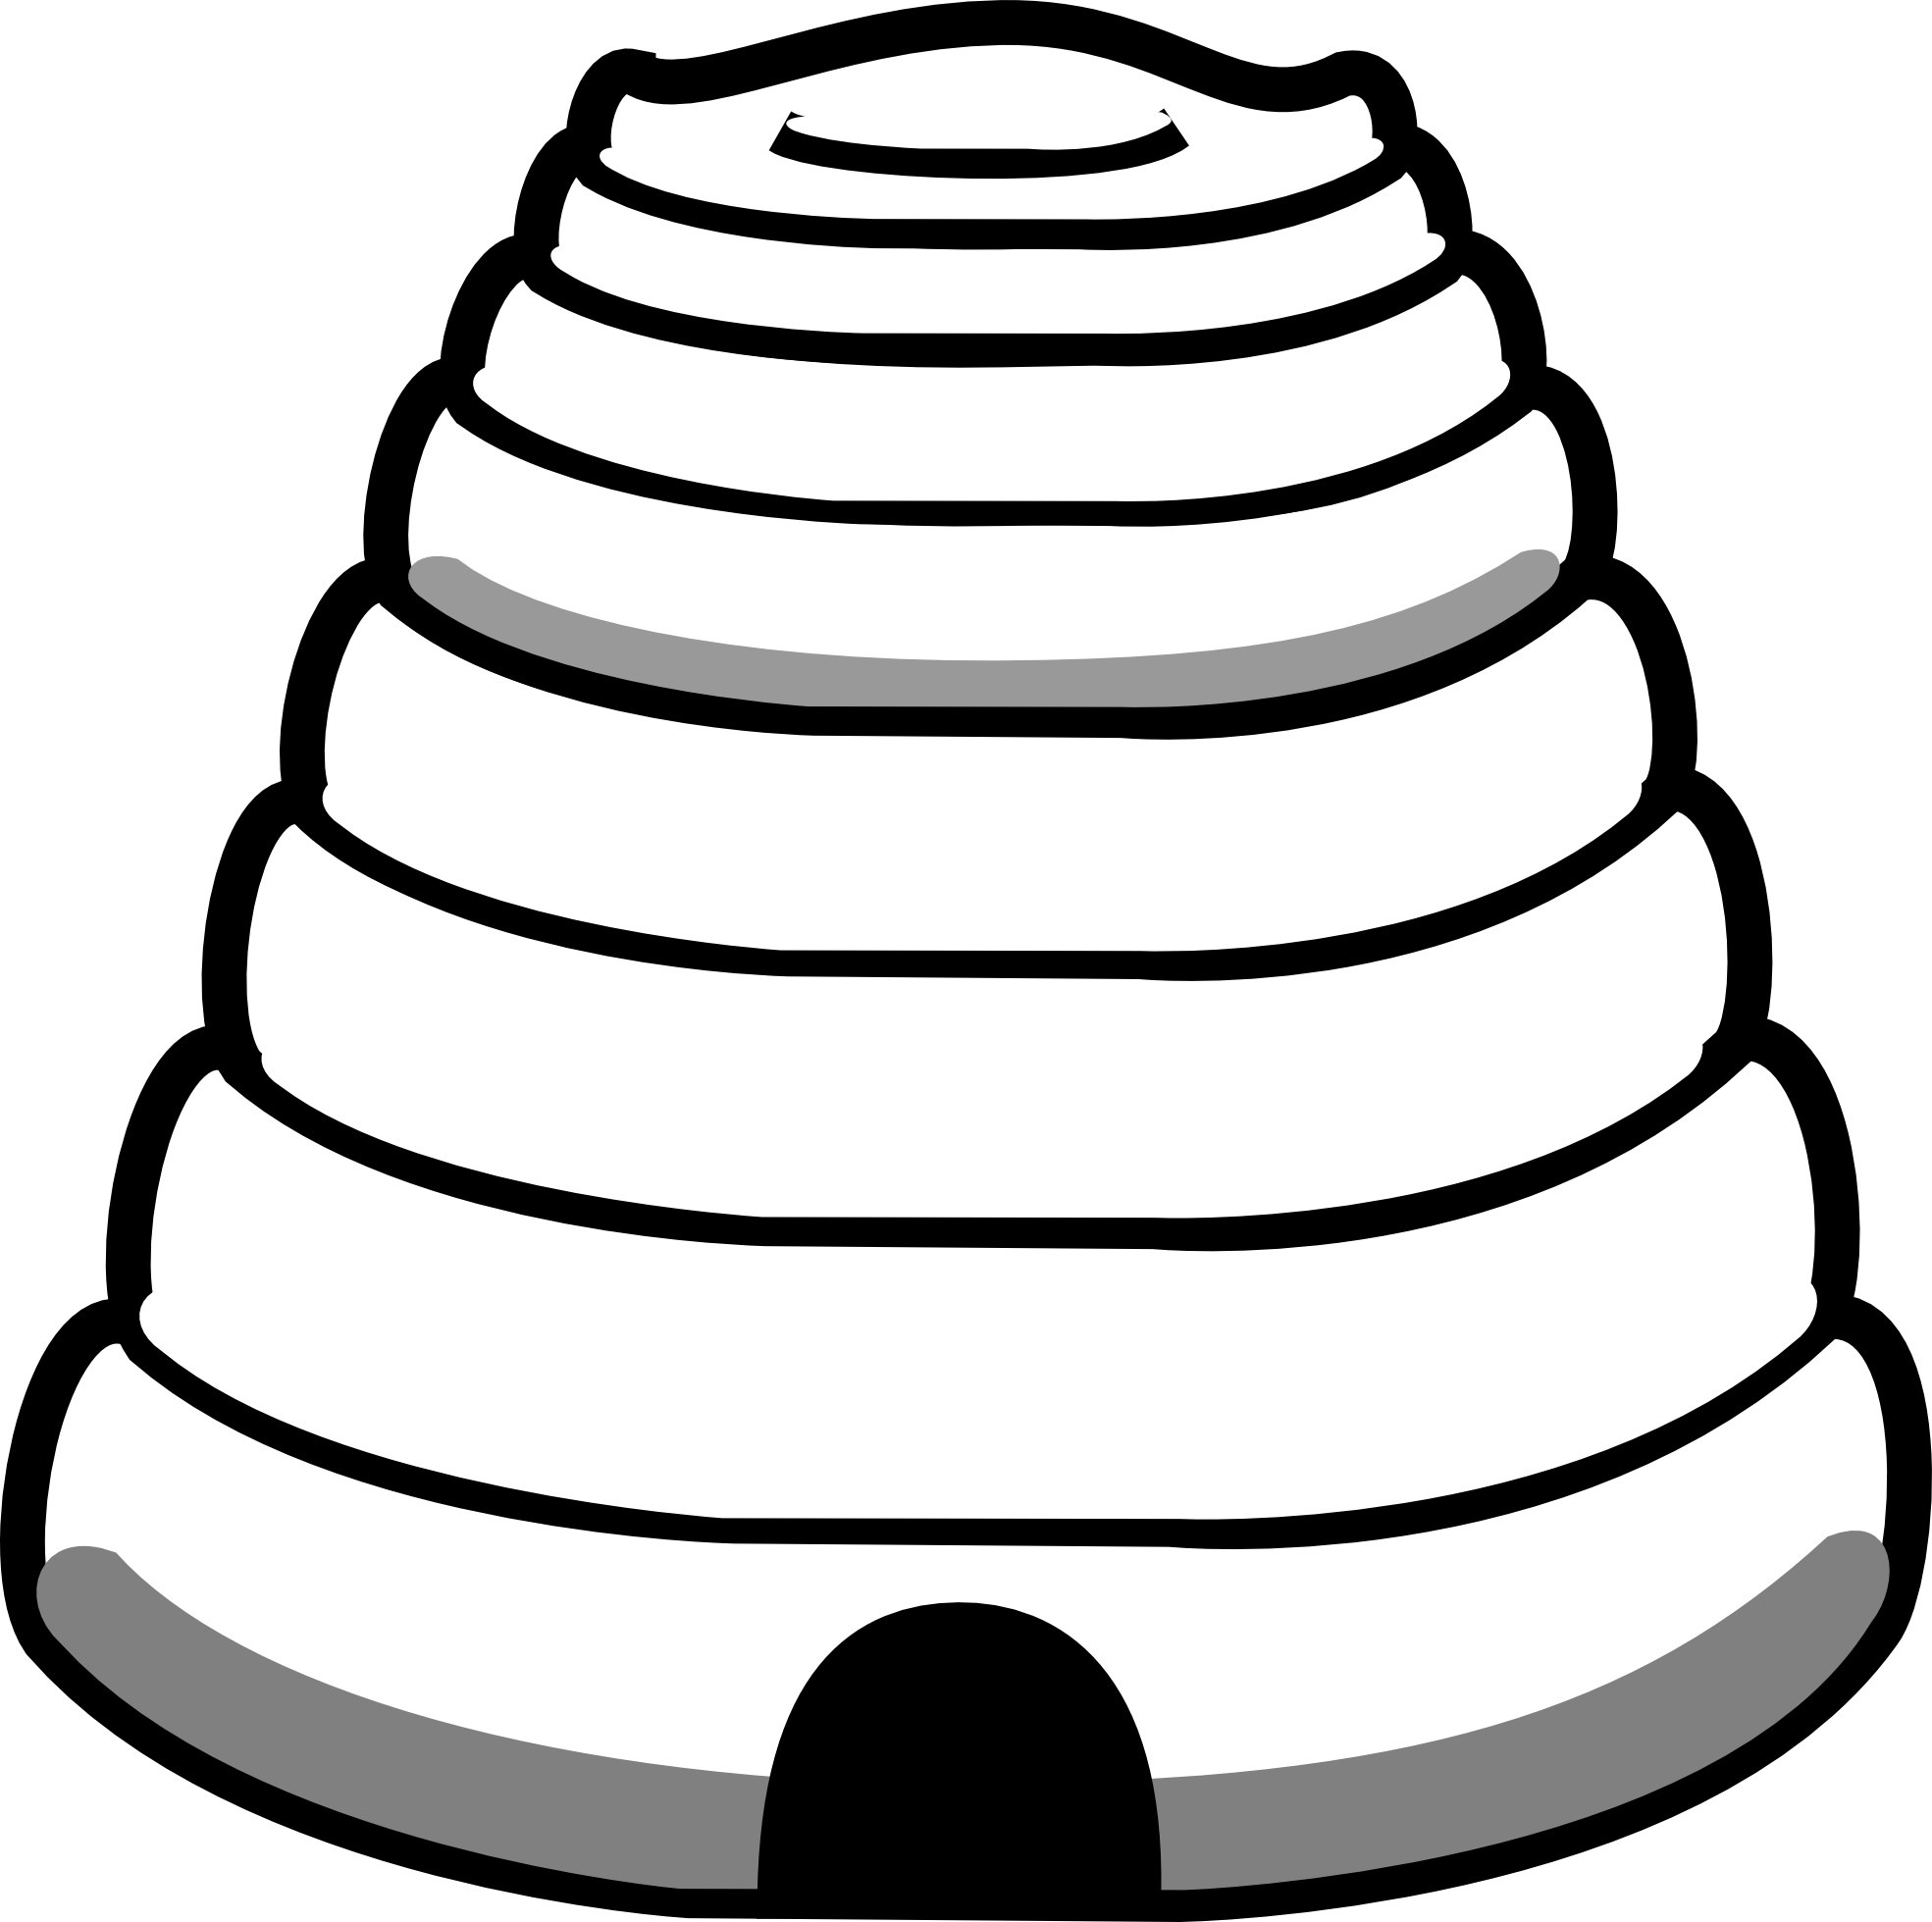 Honeycomb clipart outline. Beehive black and white